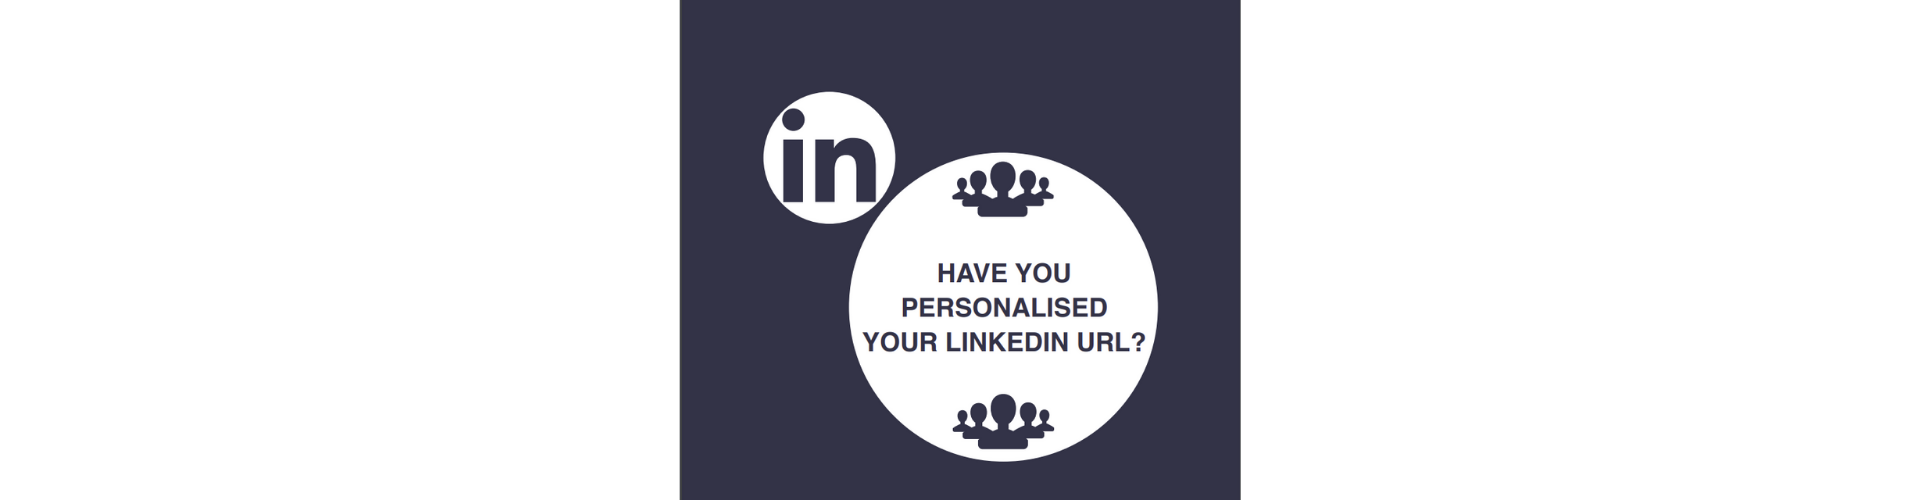 how to get LinkedIn URL that is personal to you